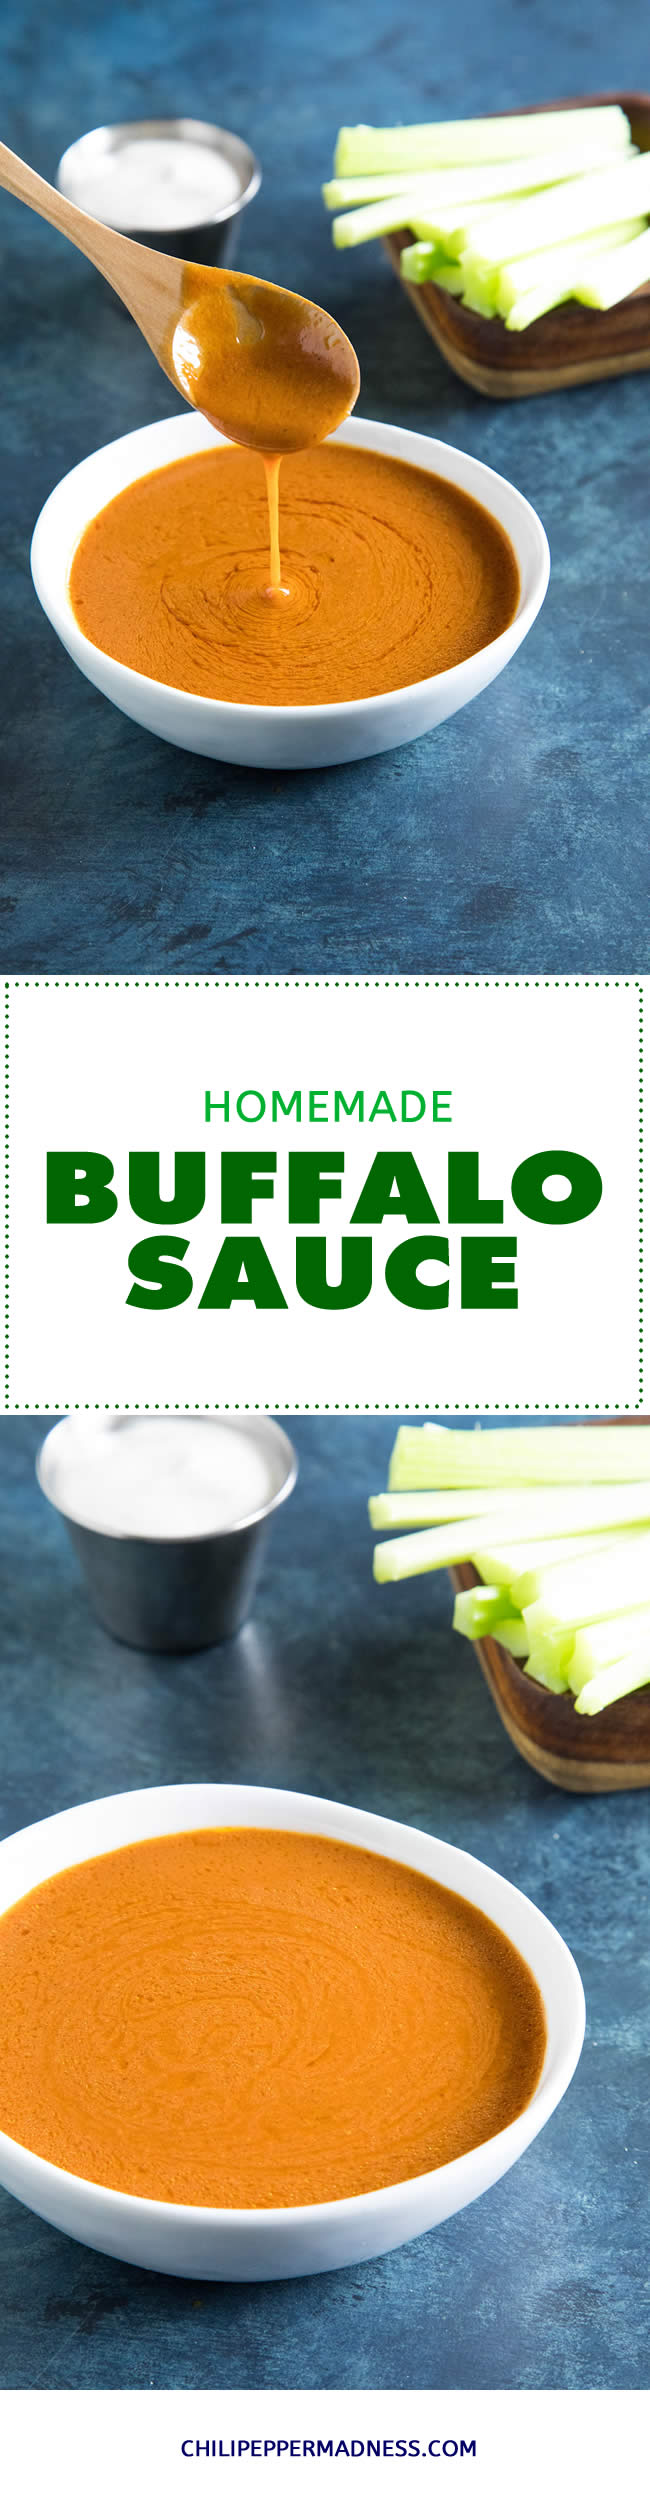 Homemade Buffalo Sauce - Recipe | ChiliPepperMadness.com